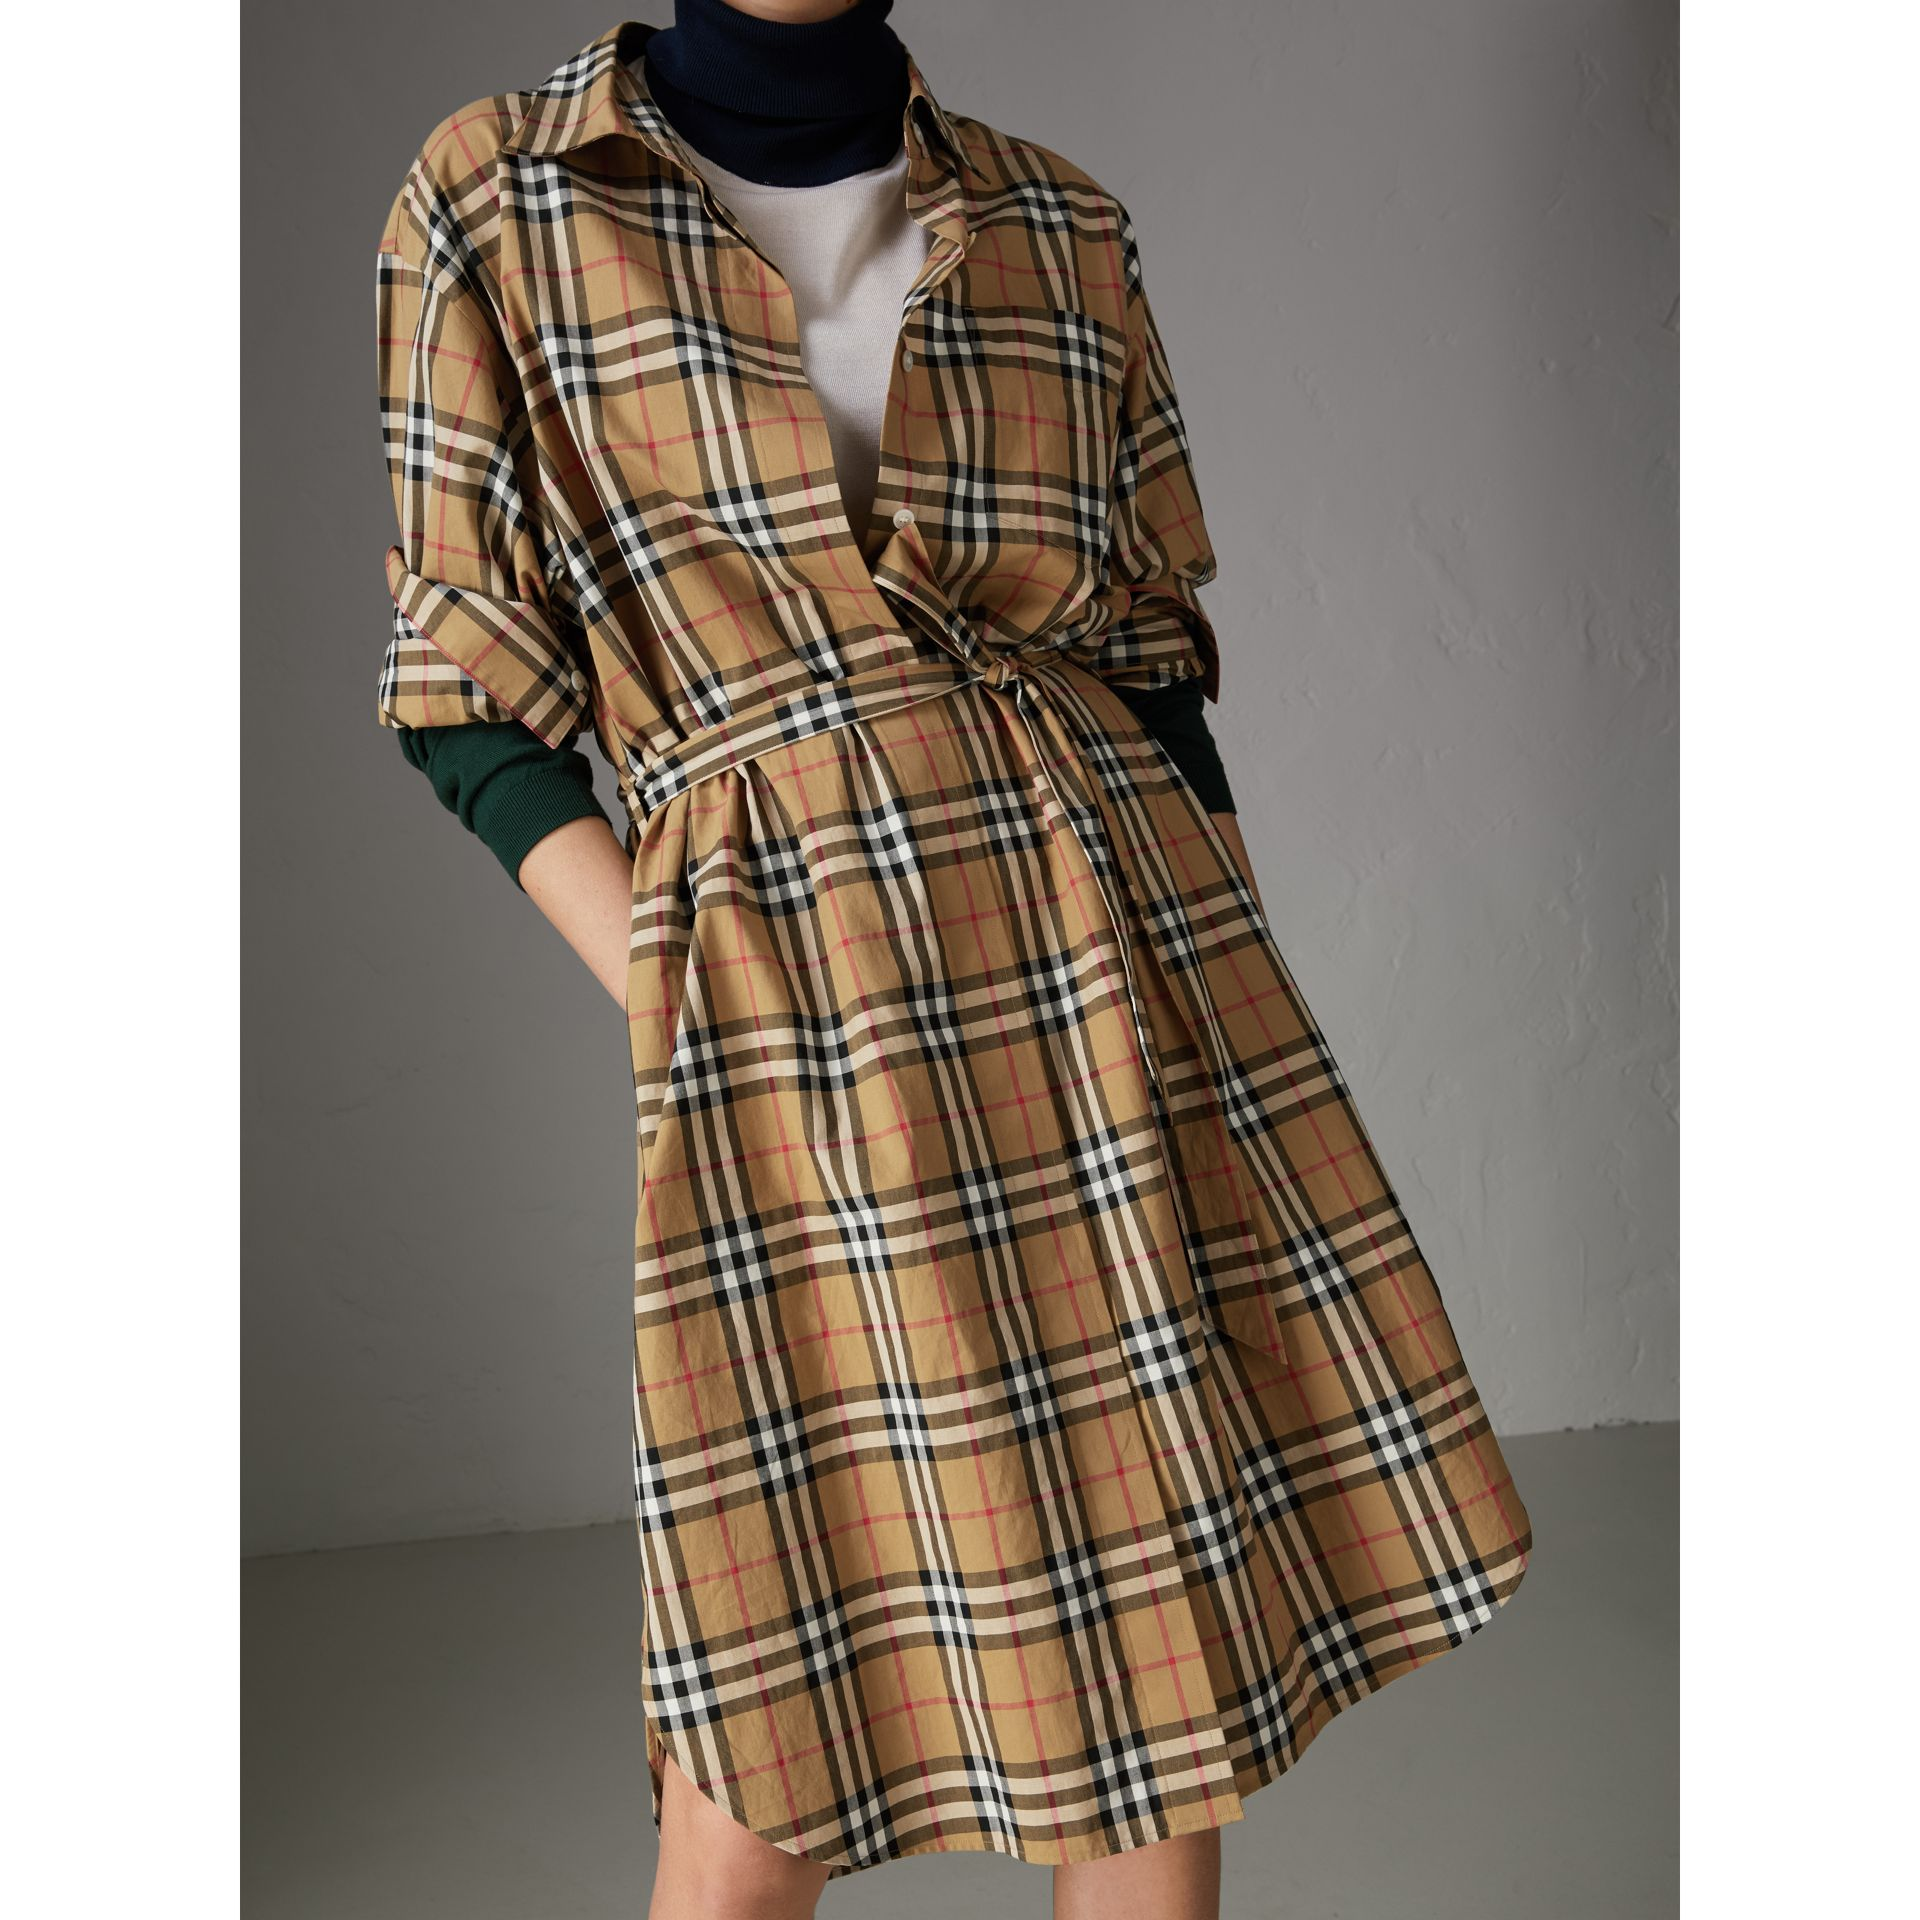 Robe chemise en coton ceinturée à motif Vintage check (Jaune Antique) | Burberry - photo de la galerie 1